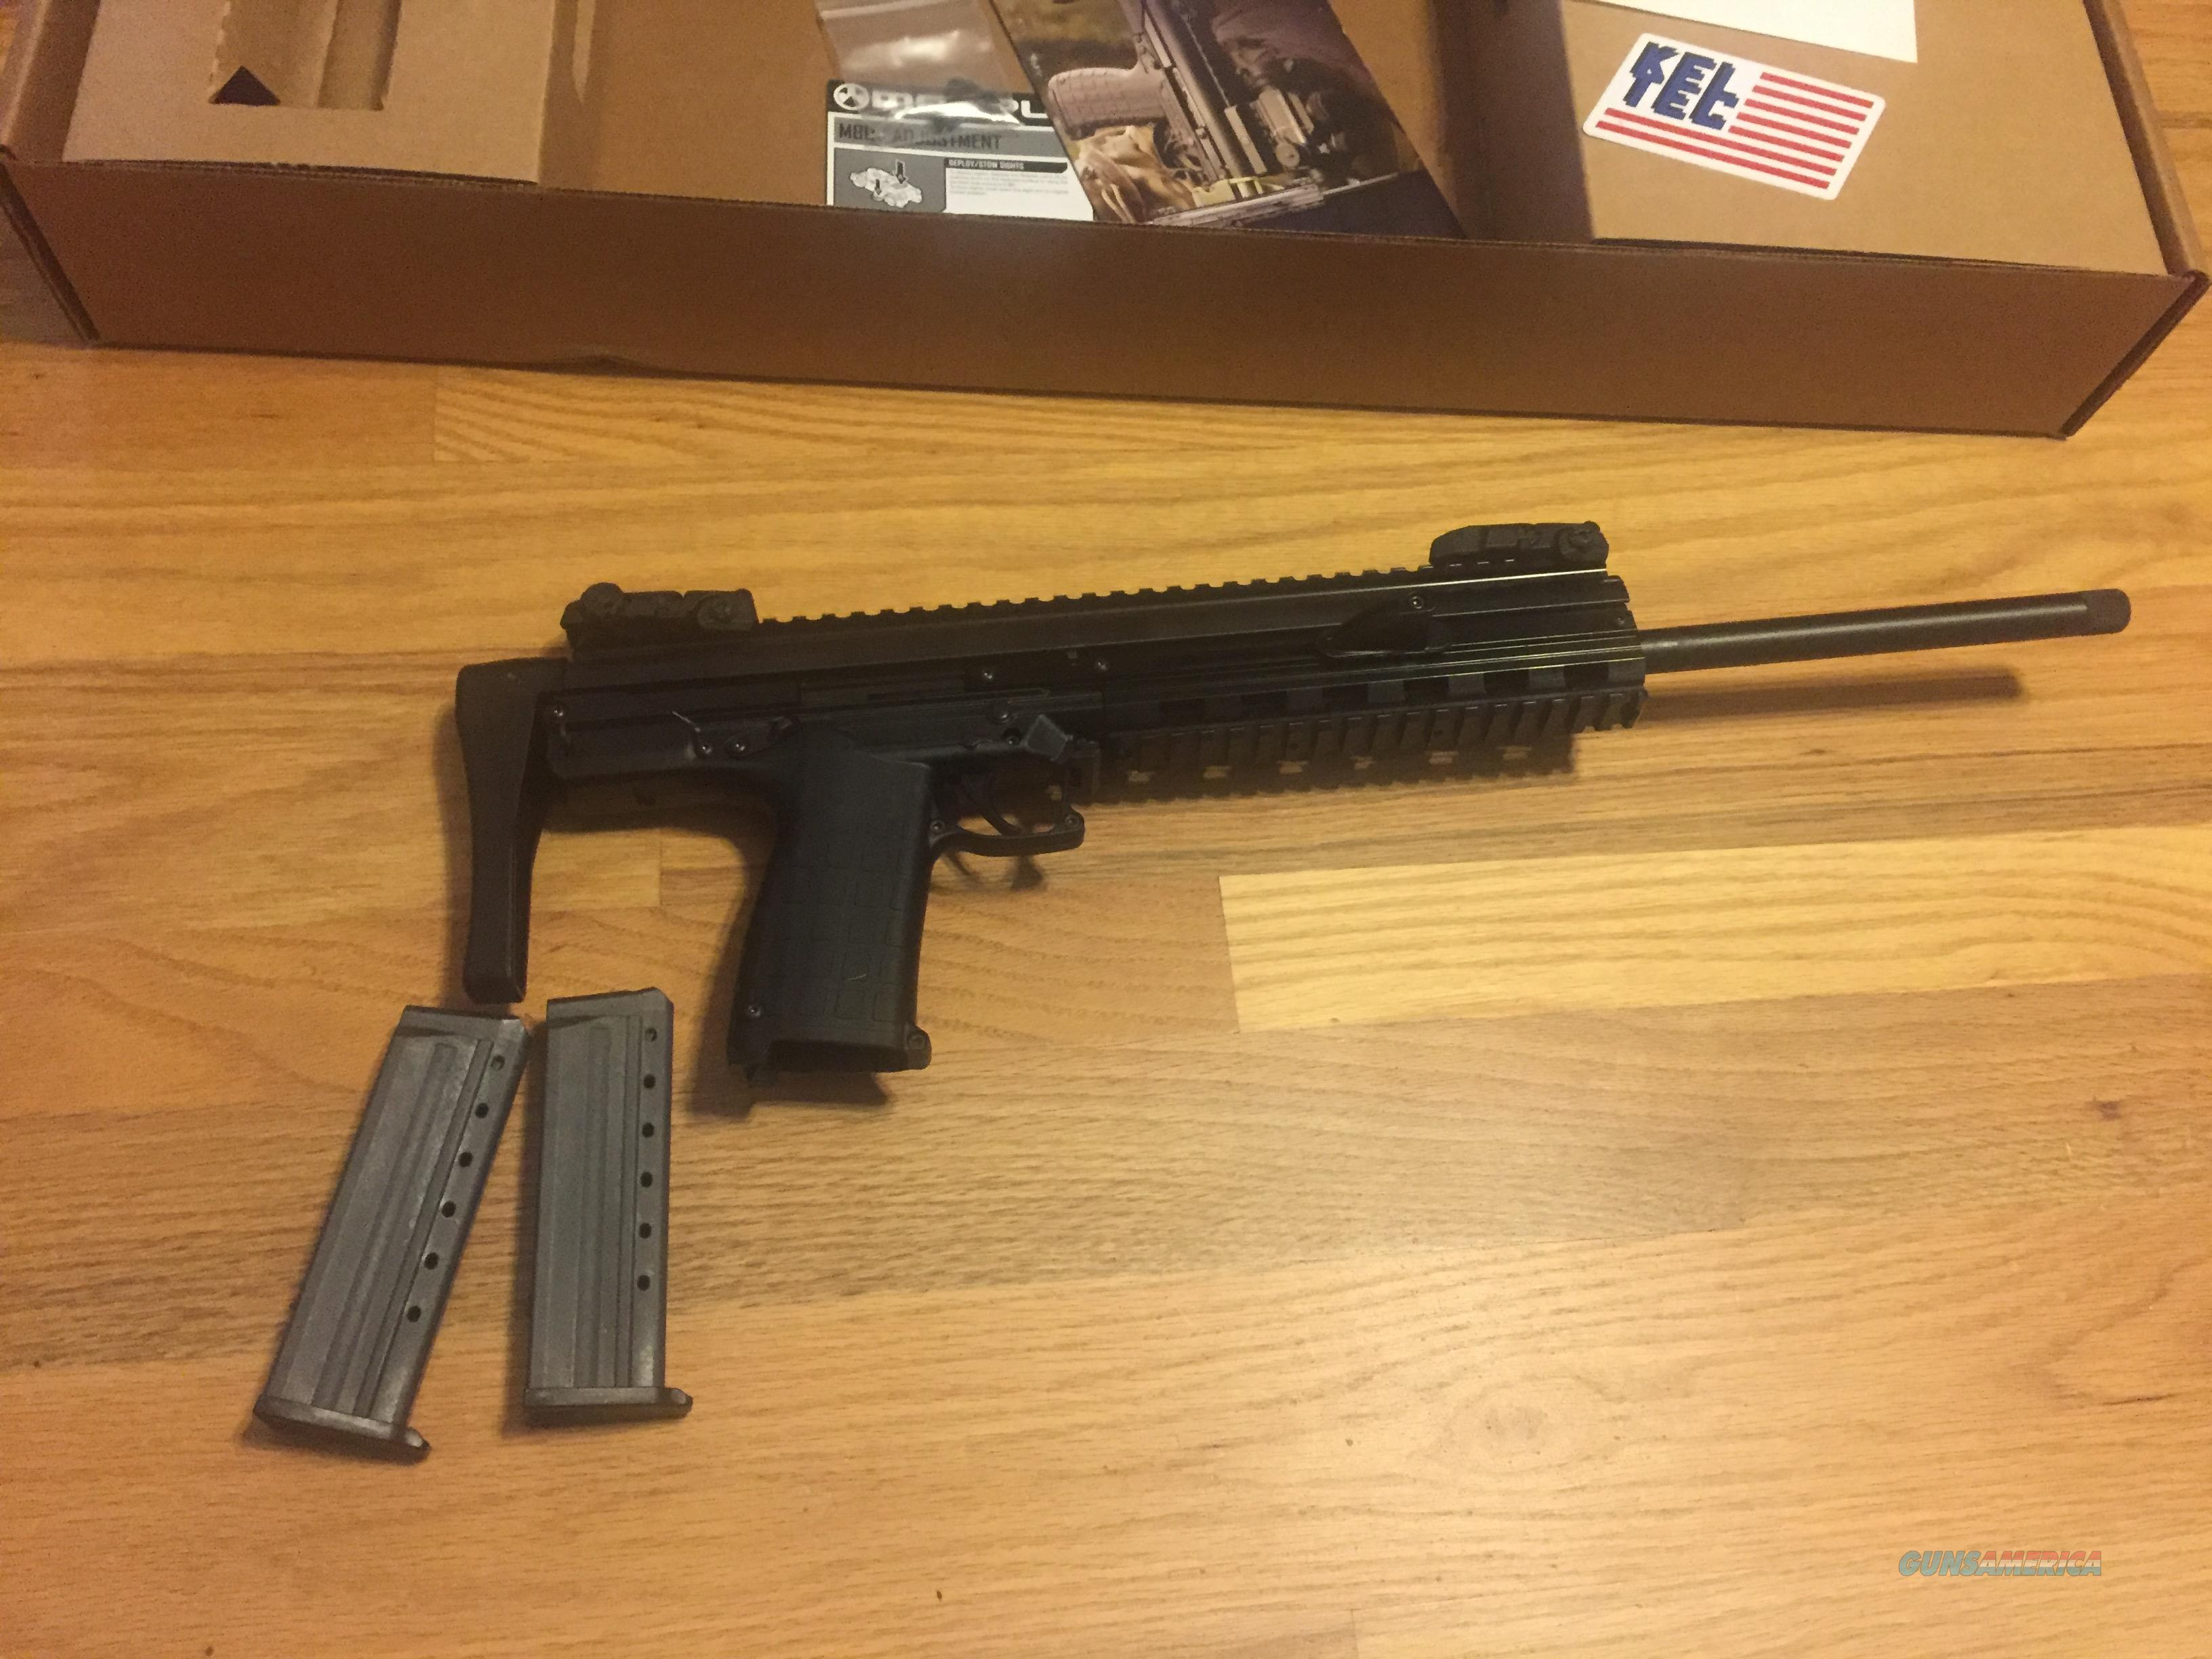 Kel-Tec CMR 30 in .22 WMR (22 mag) with two 30 round magazines CMR30 New in box  Guns > Rifles > Kel-Tec Rifles